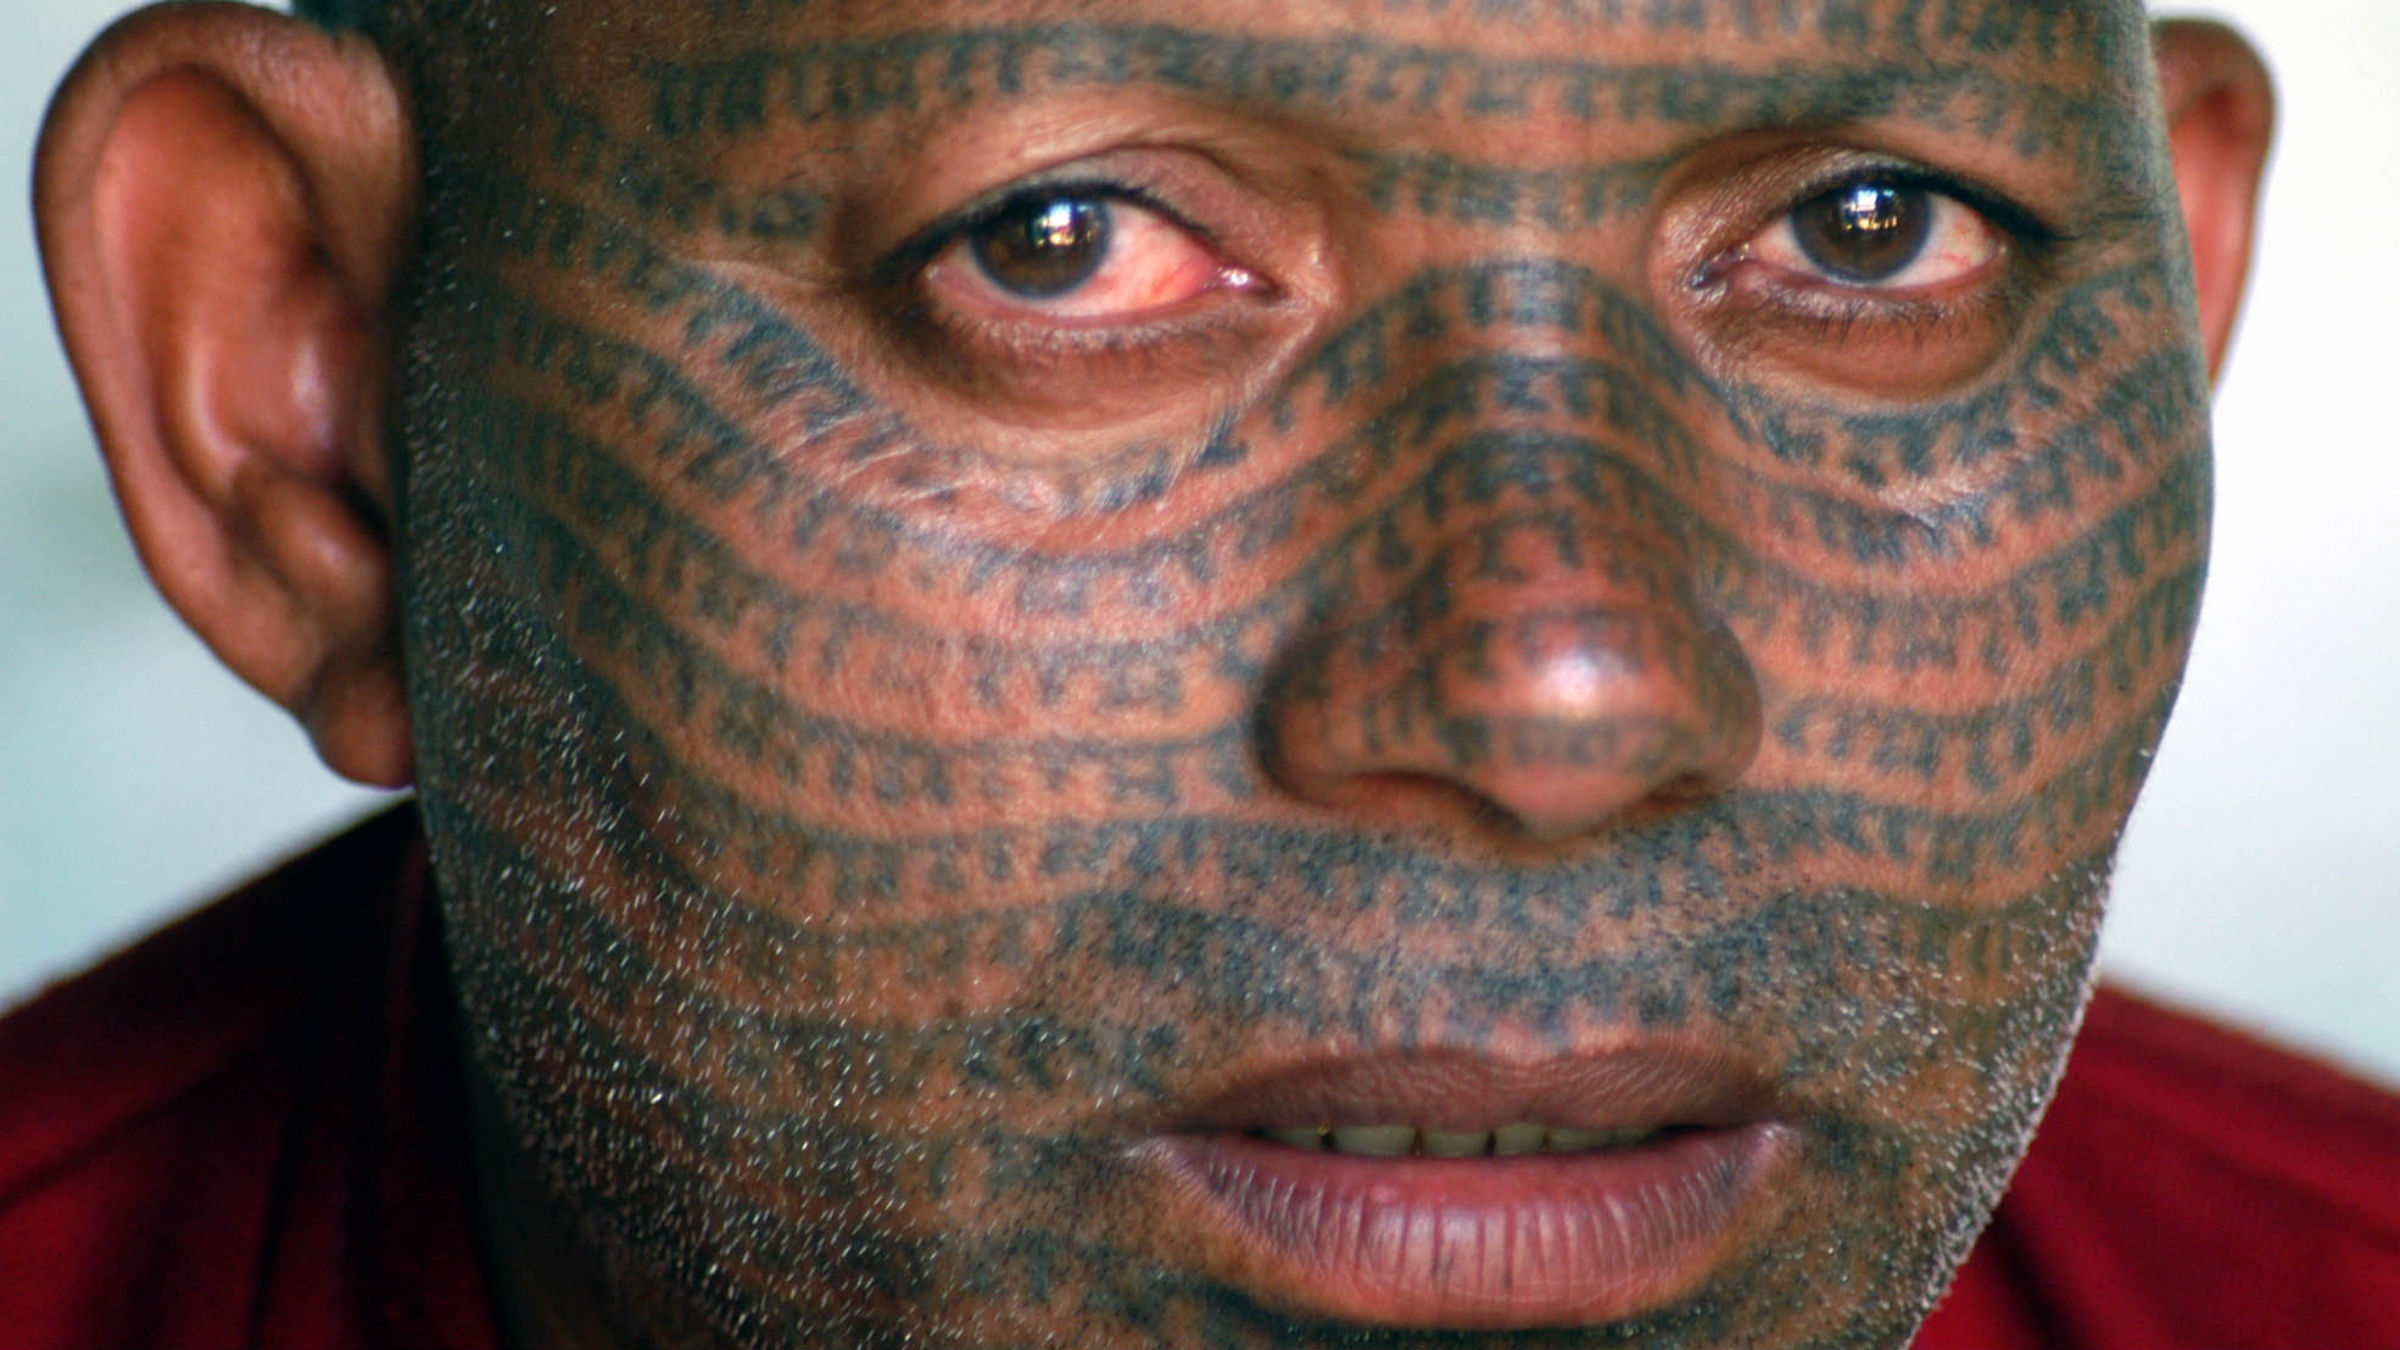 Indian man with face tattoo